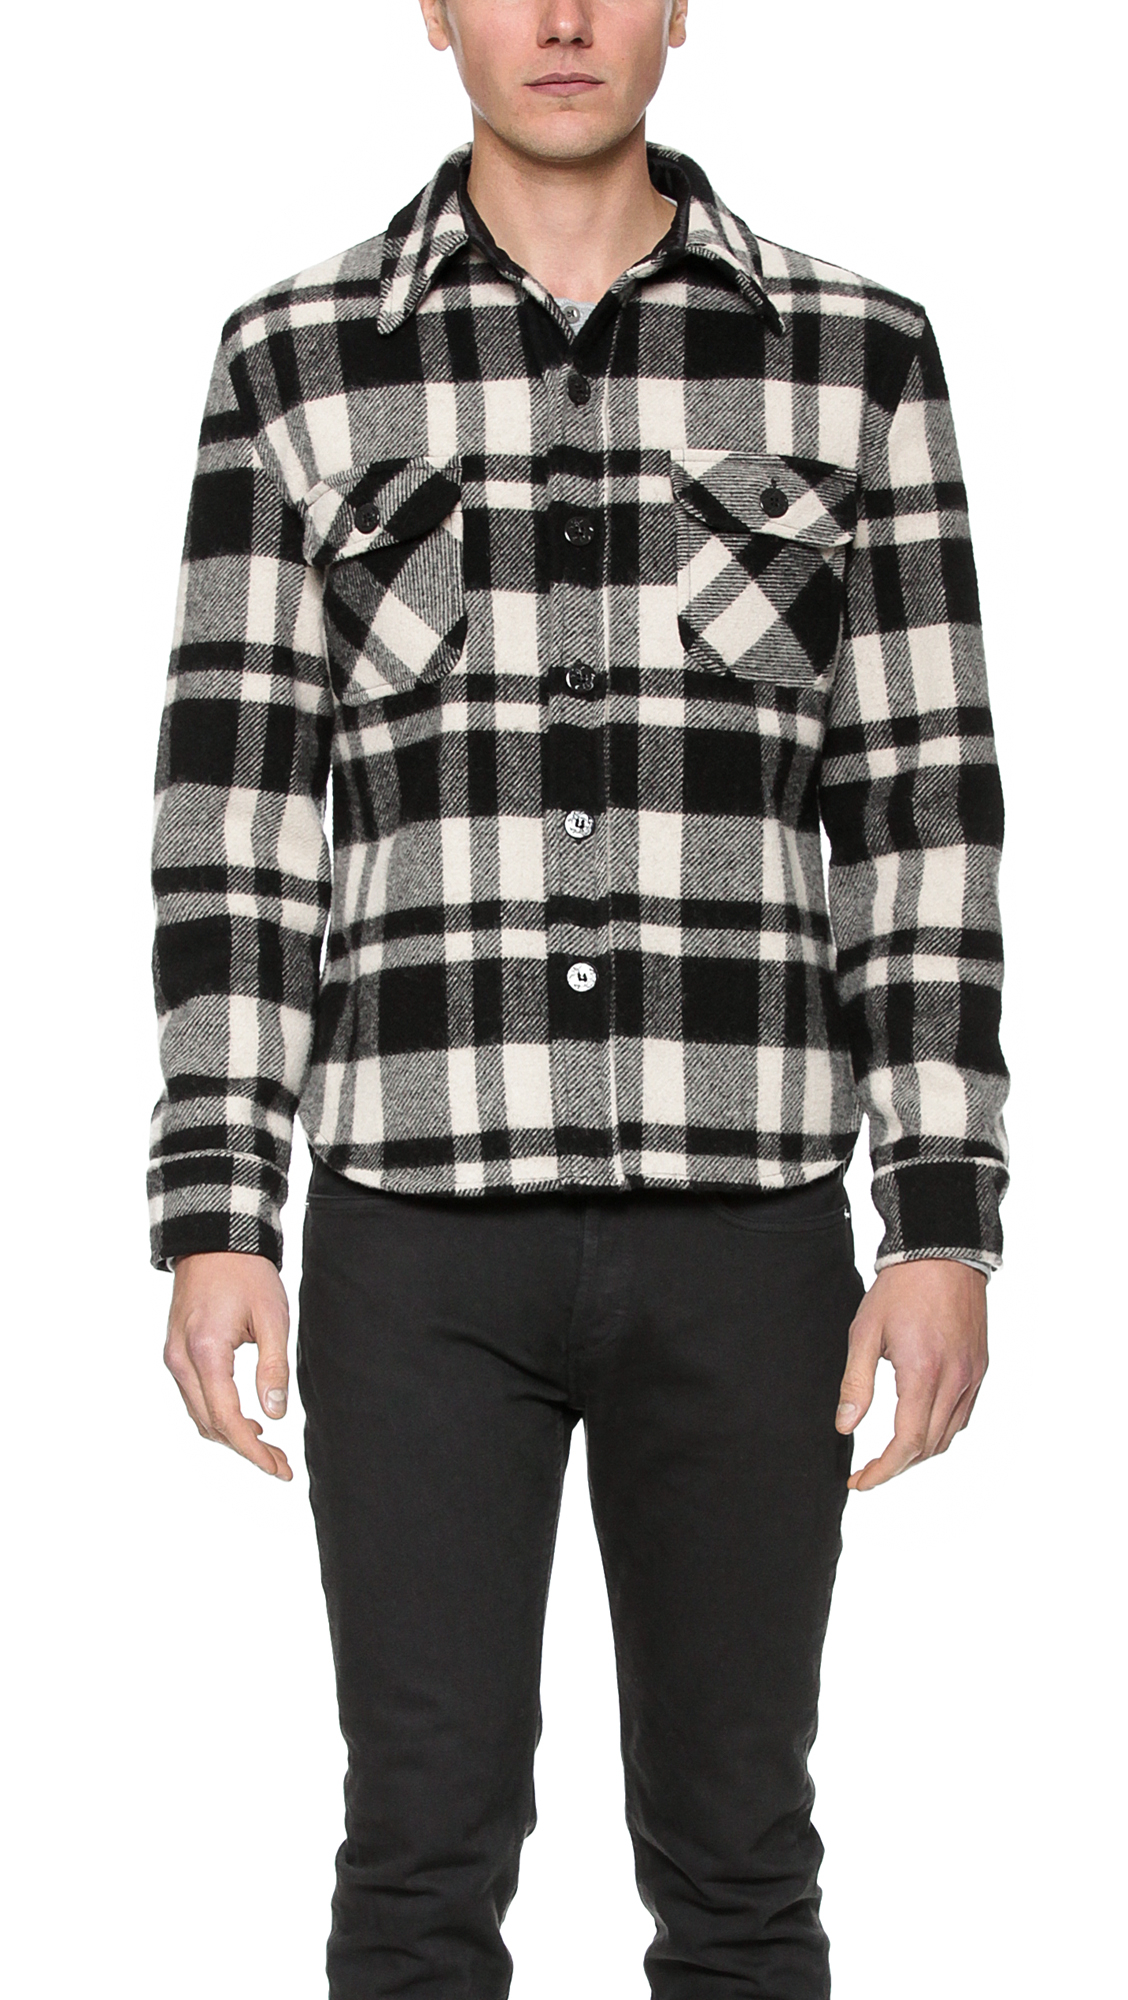 Gerald stewart plaid cpo jacket in black for men lyst for Fidelity cpo shirt jacket